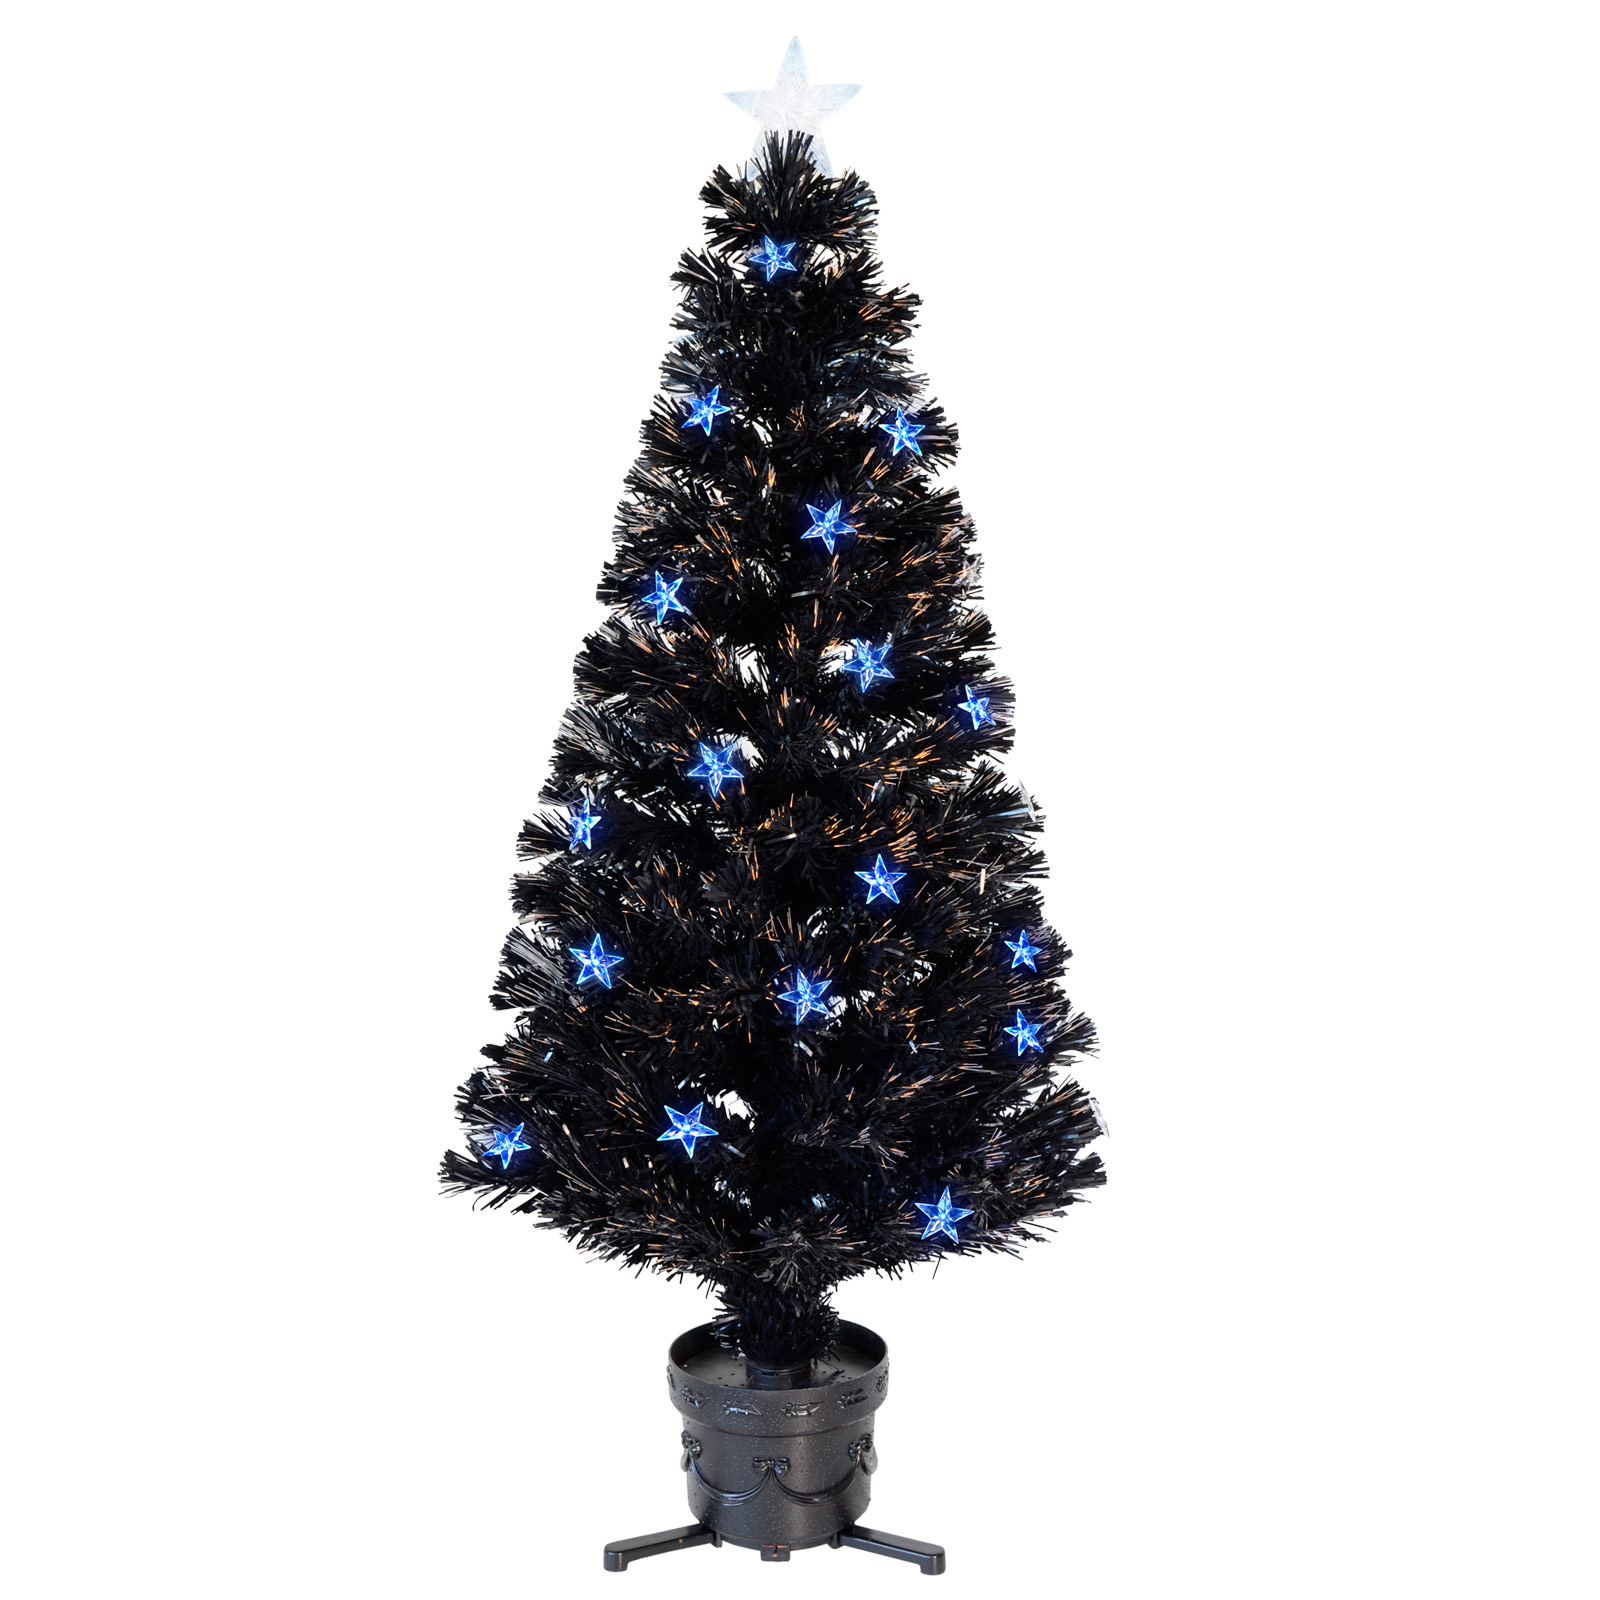 4ft 120cm Black Fibre Optic Artificial Indoor Christmas Tree With Blue LED Stars